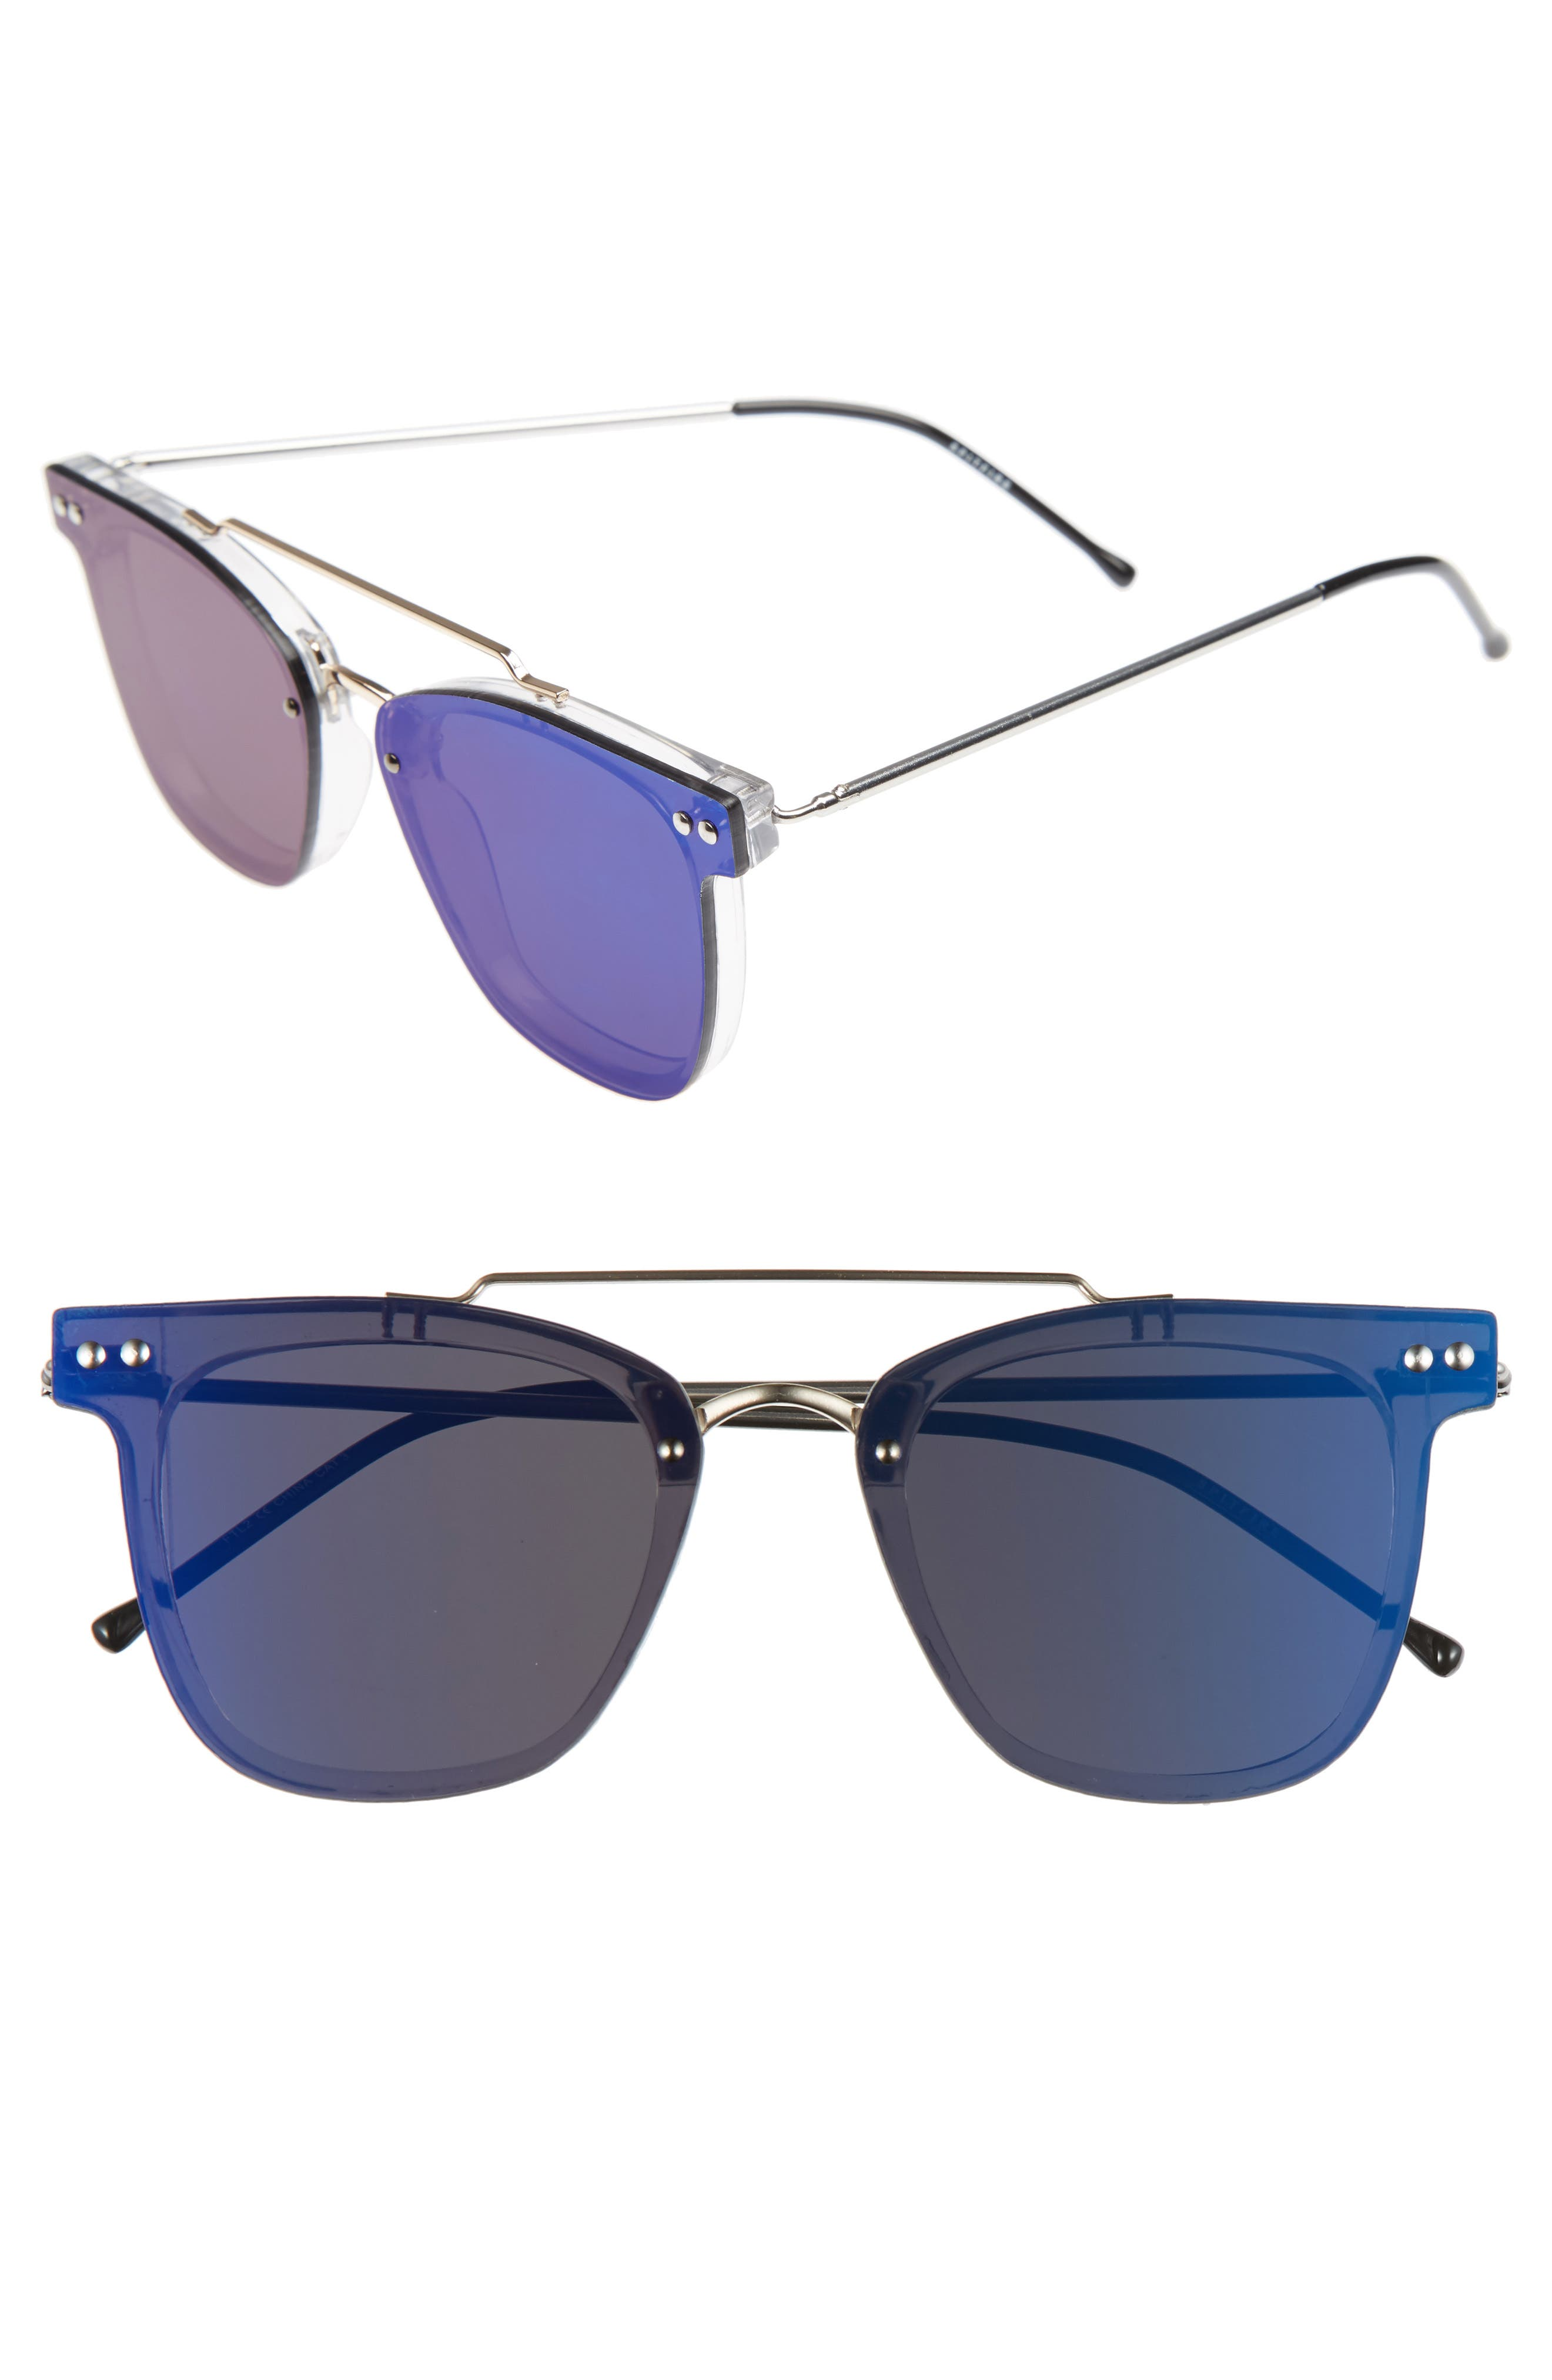 FTL 2 54mm Flat Frame Sunglasses,                         Main,                         color, Clear/ Gold/ Blue Mirror